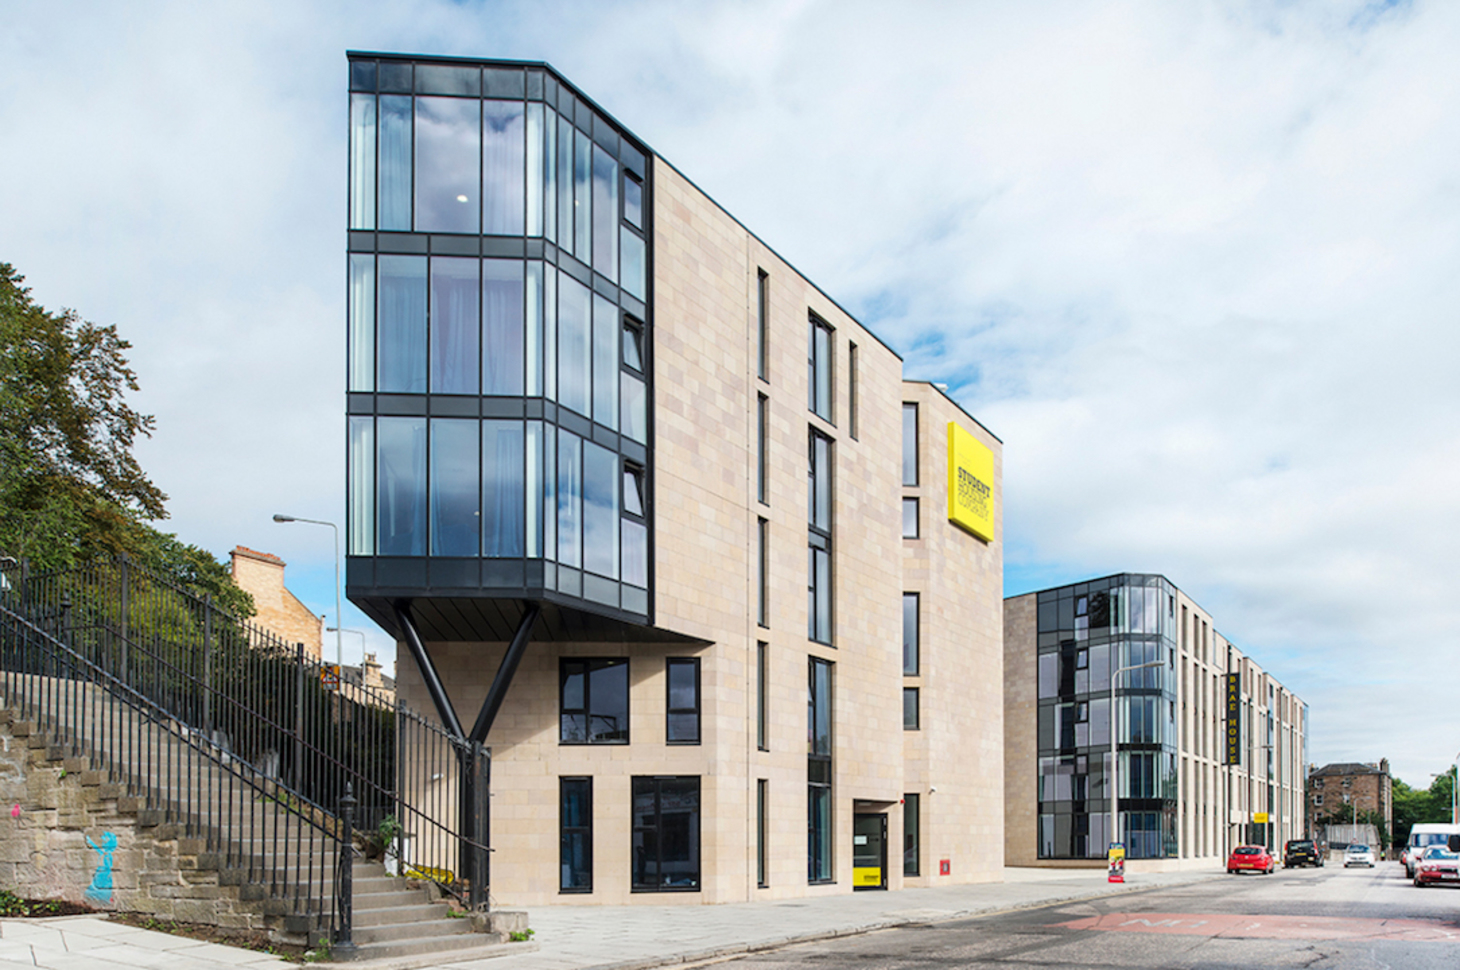 Manson are nominated in the Scottish Property Awards for Brae House Student Residences image